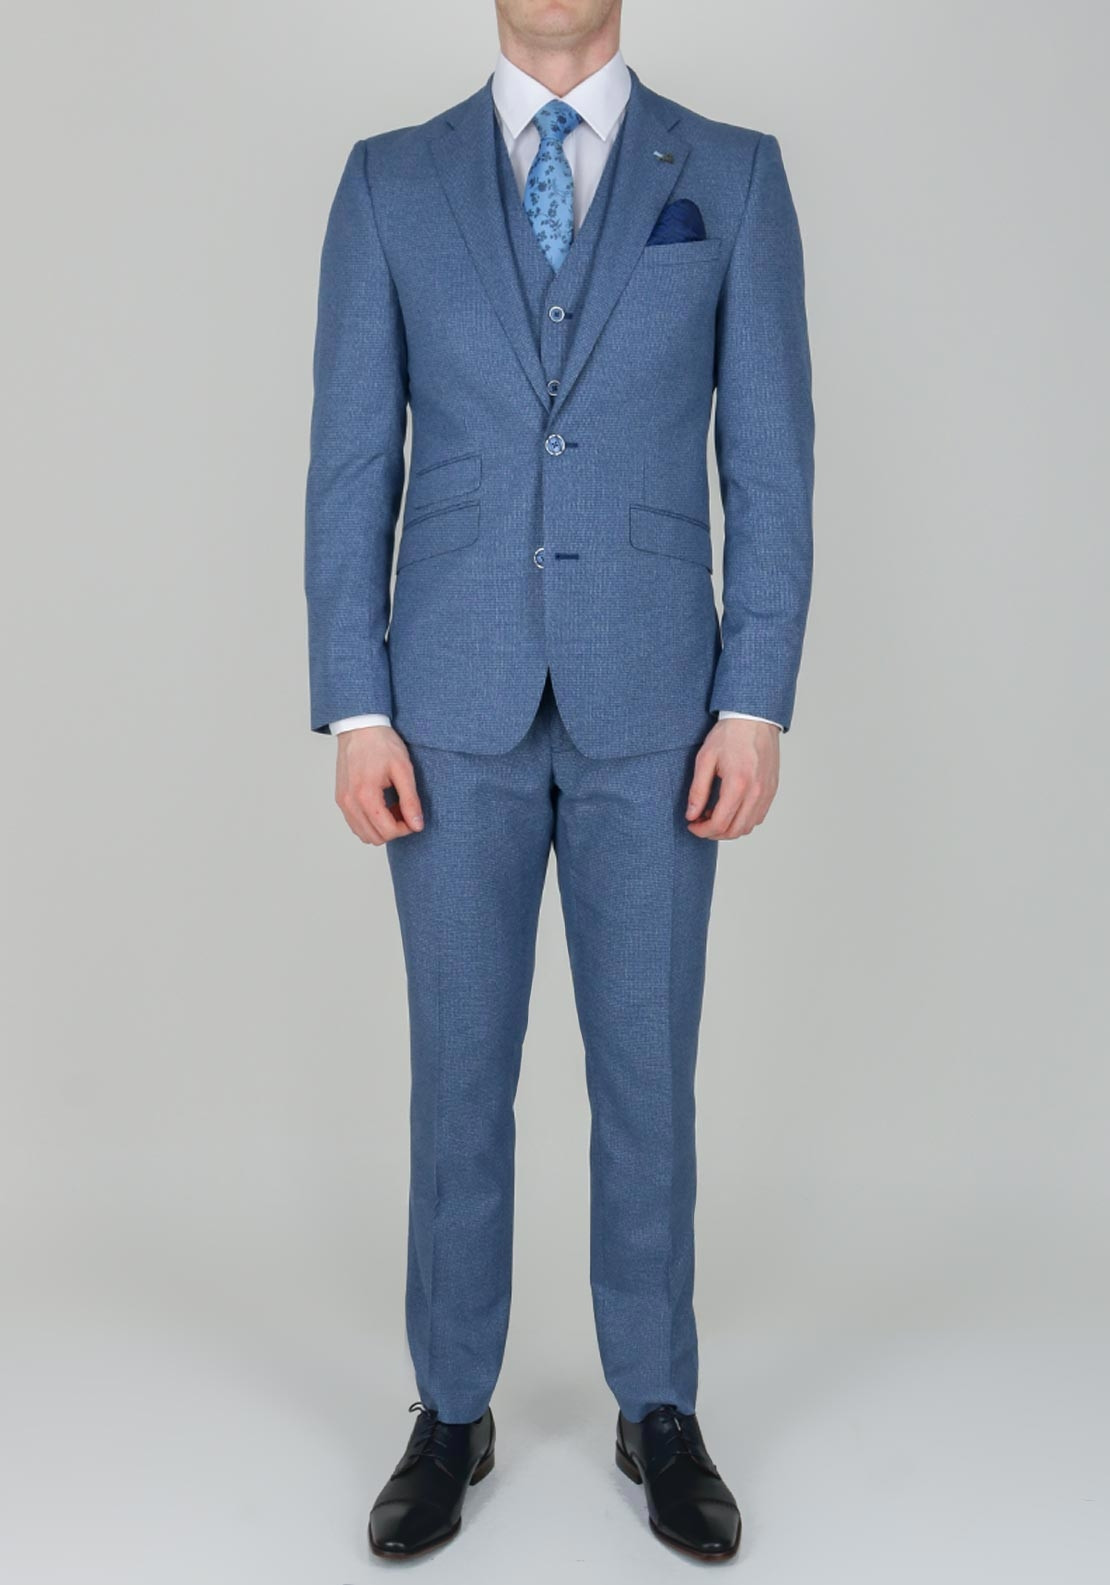 Herbie Frogg Blue Nails head Print 3-Piece Suit | McElhinneys